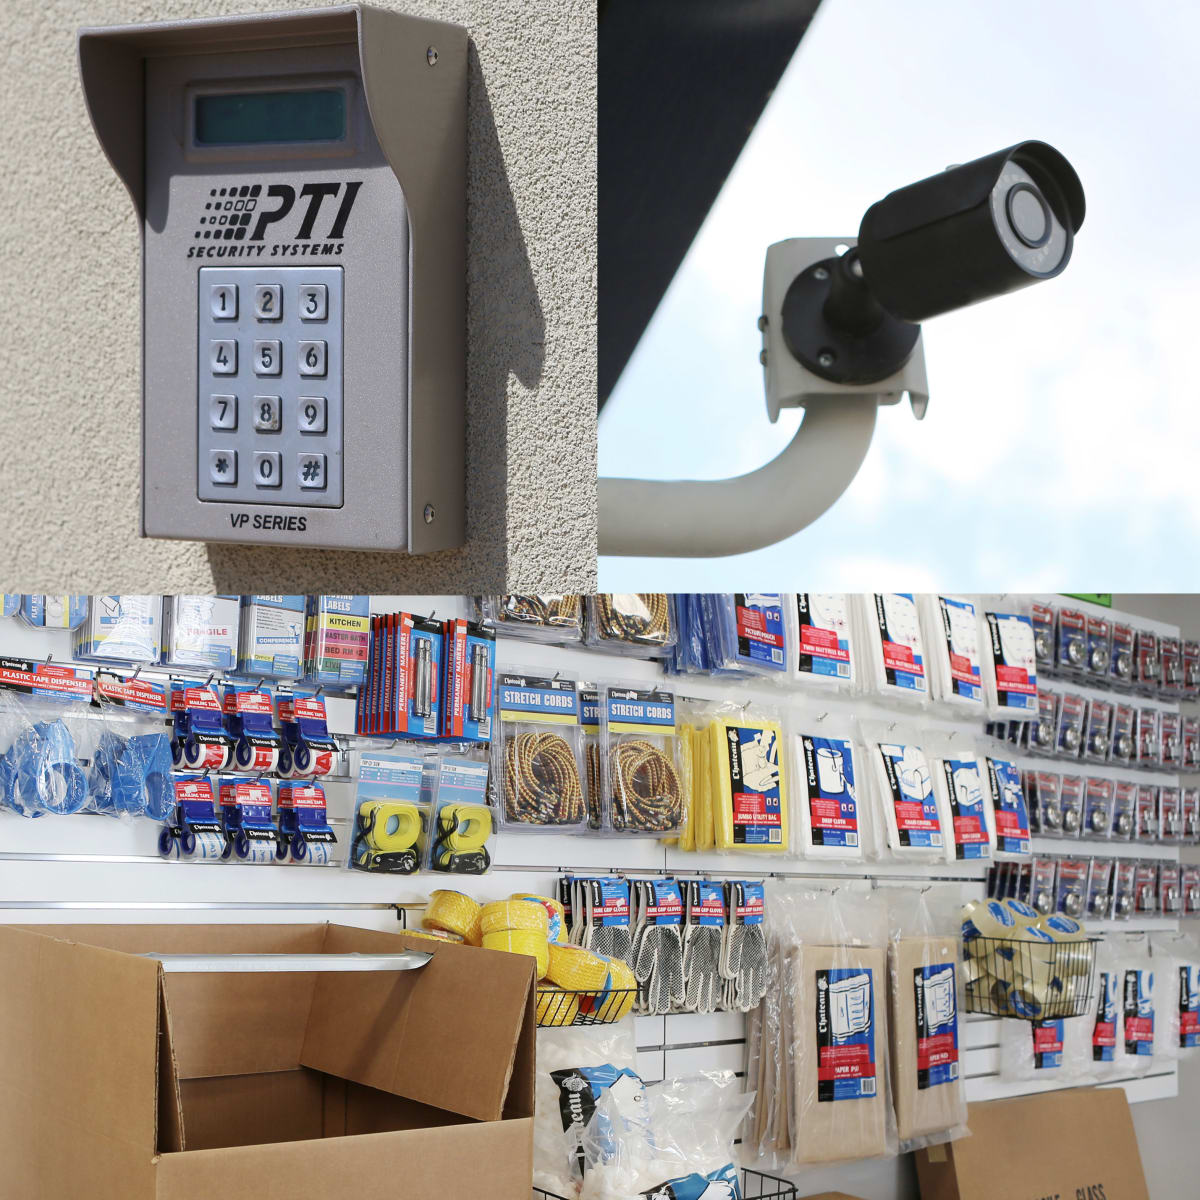 We provide 24 hour security monitoring and sell various moving and packing supplies at StoreSmart Self Storage in Roswell, Georgia